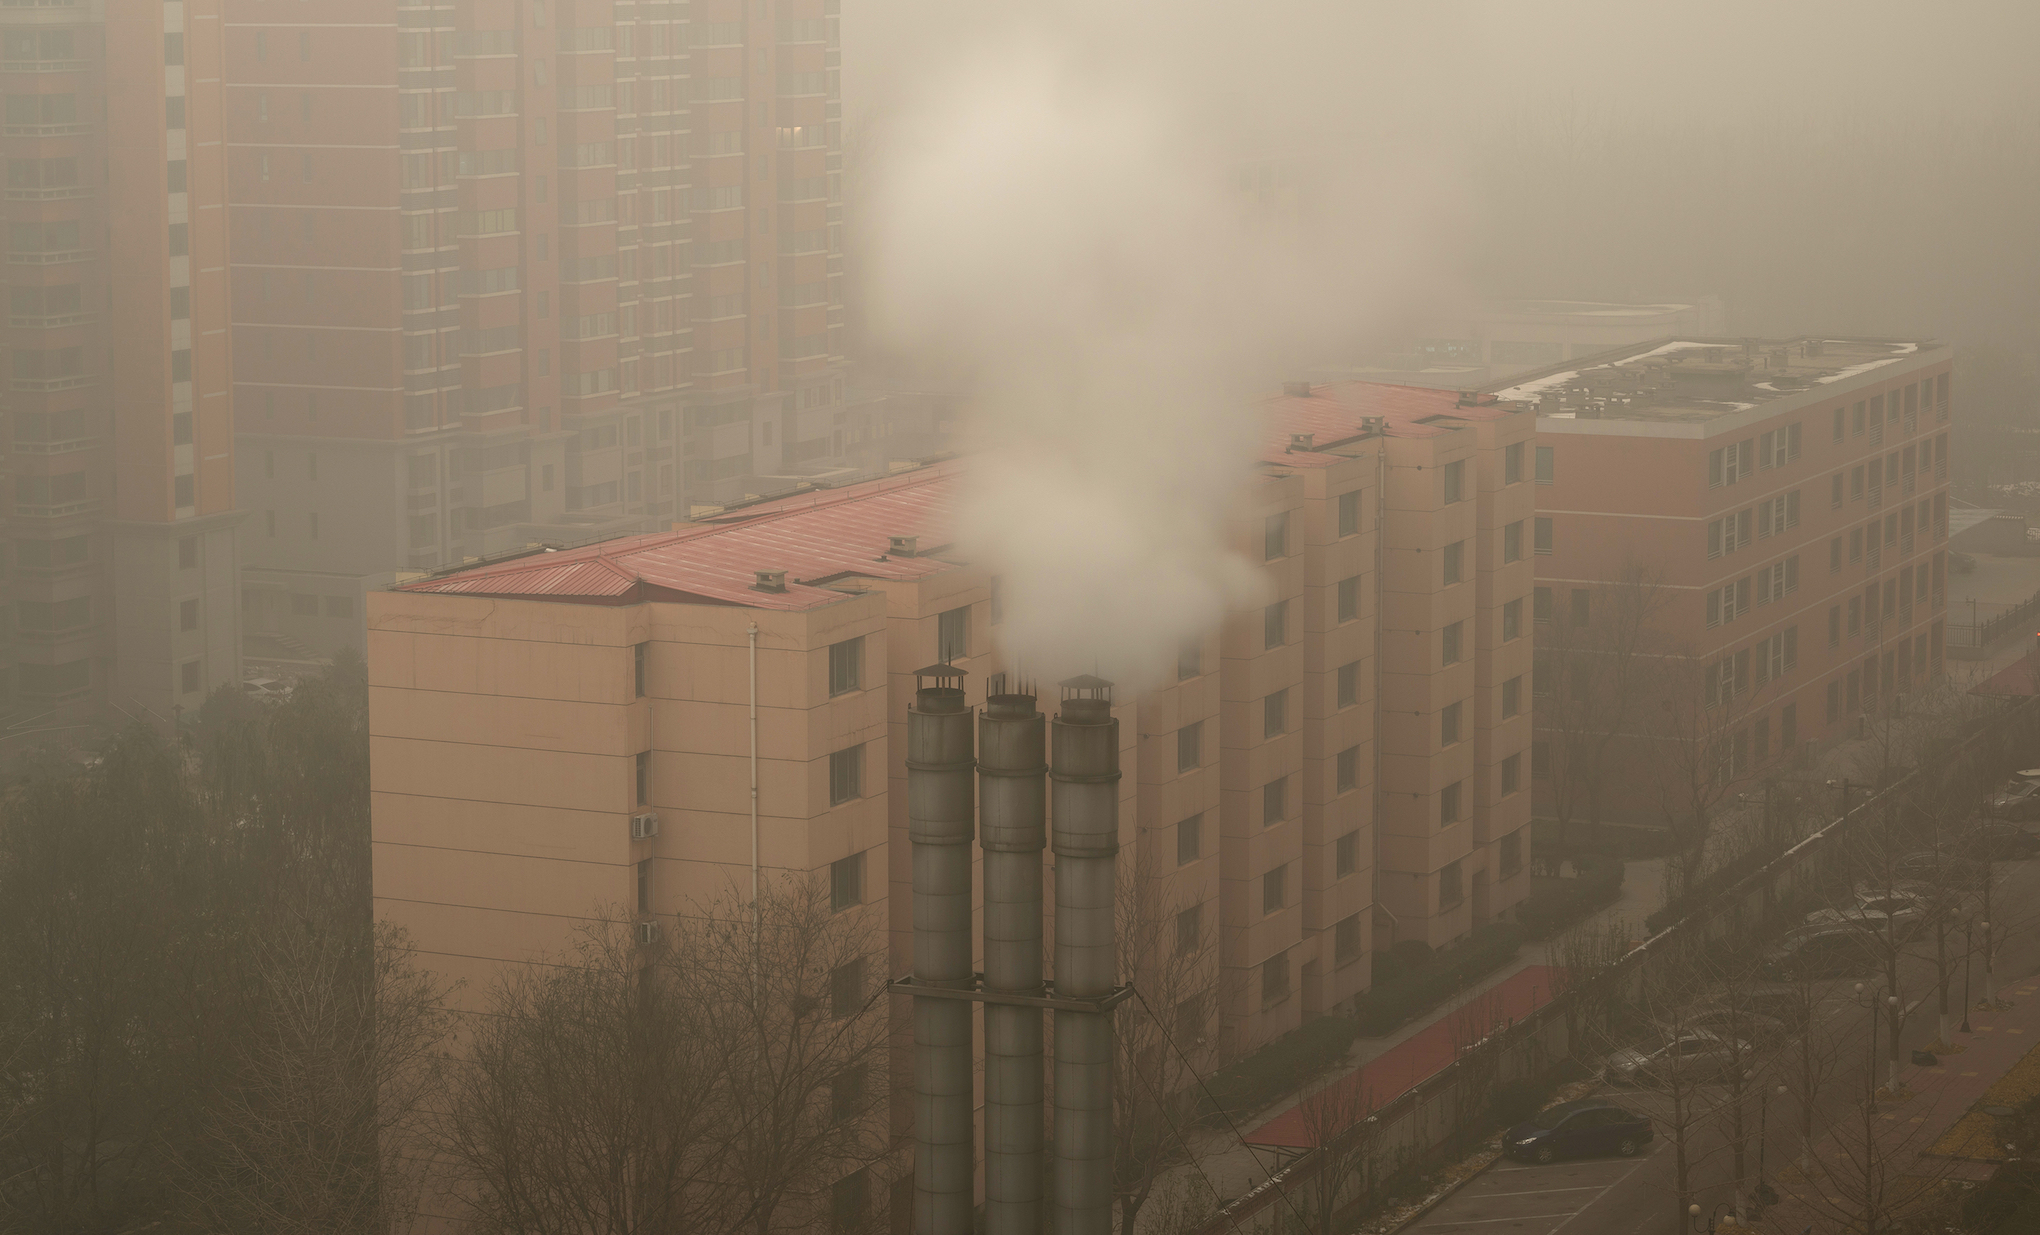 A new survey has found that China is at least partially responsible for the mysterious spike of atmospheric levels of CFCs.